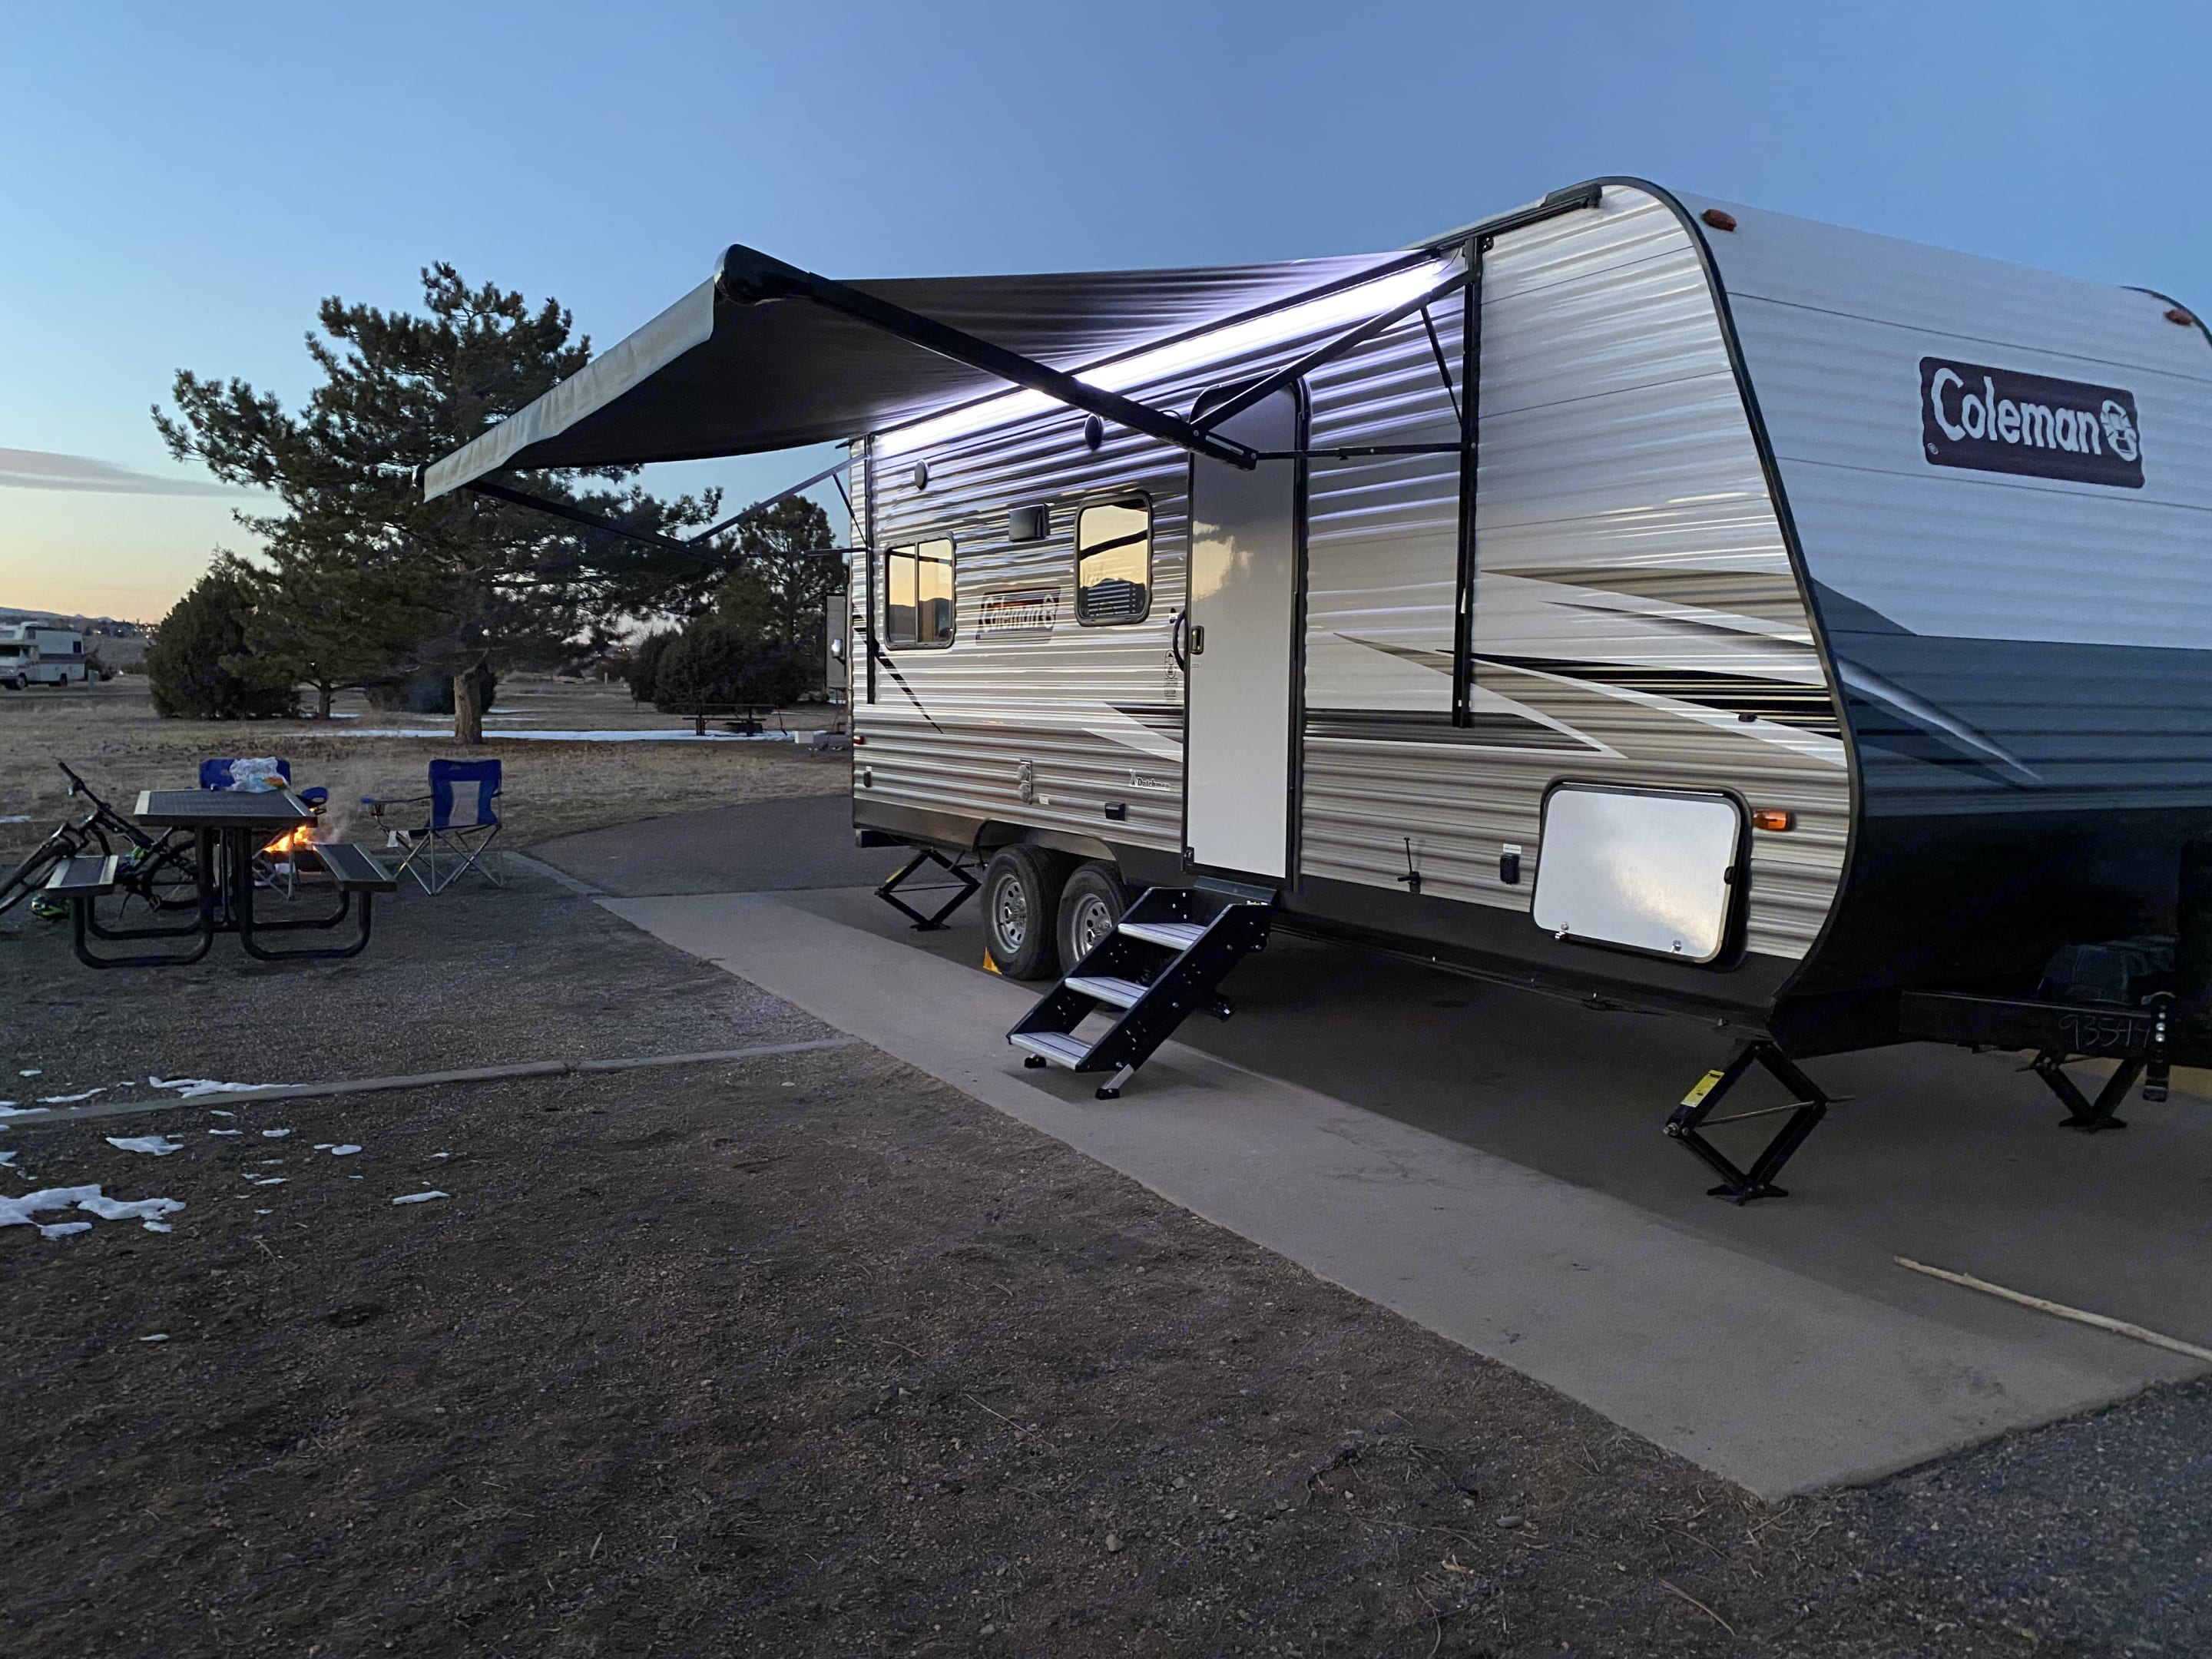 This trailer is quick to setup and provides a variety of amenities for outdoor entertainment, including LED lights, and bluetooth stereo.. Dutchmen Coleman 2021